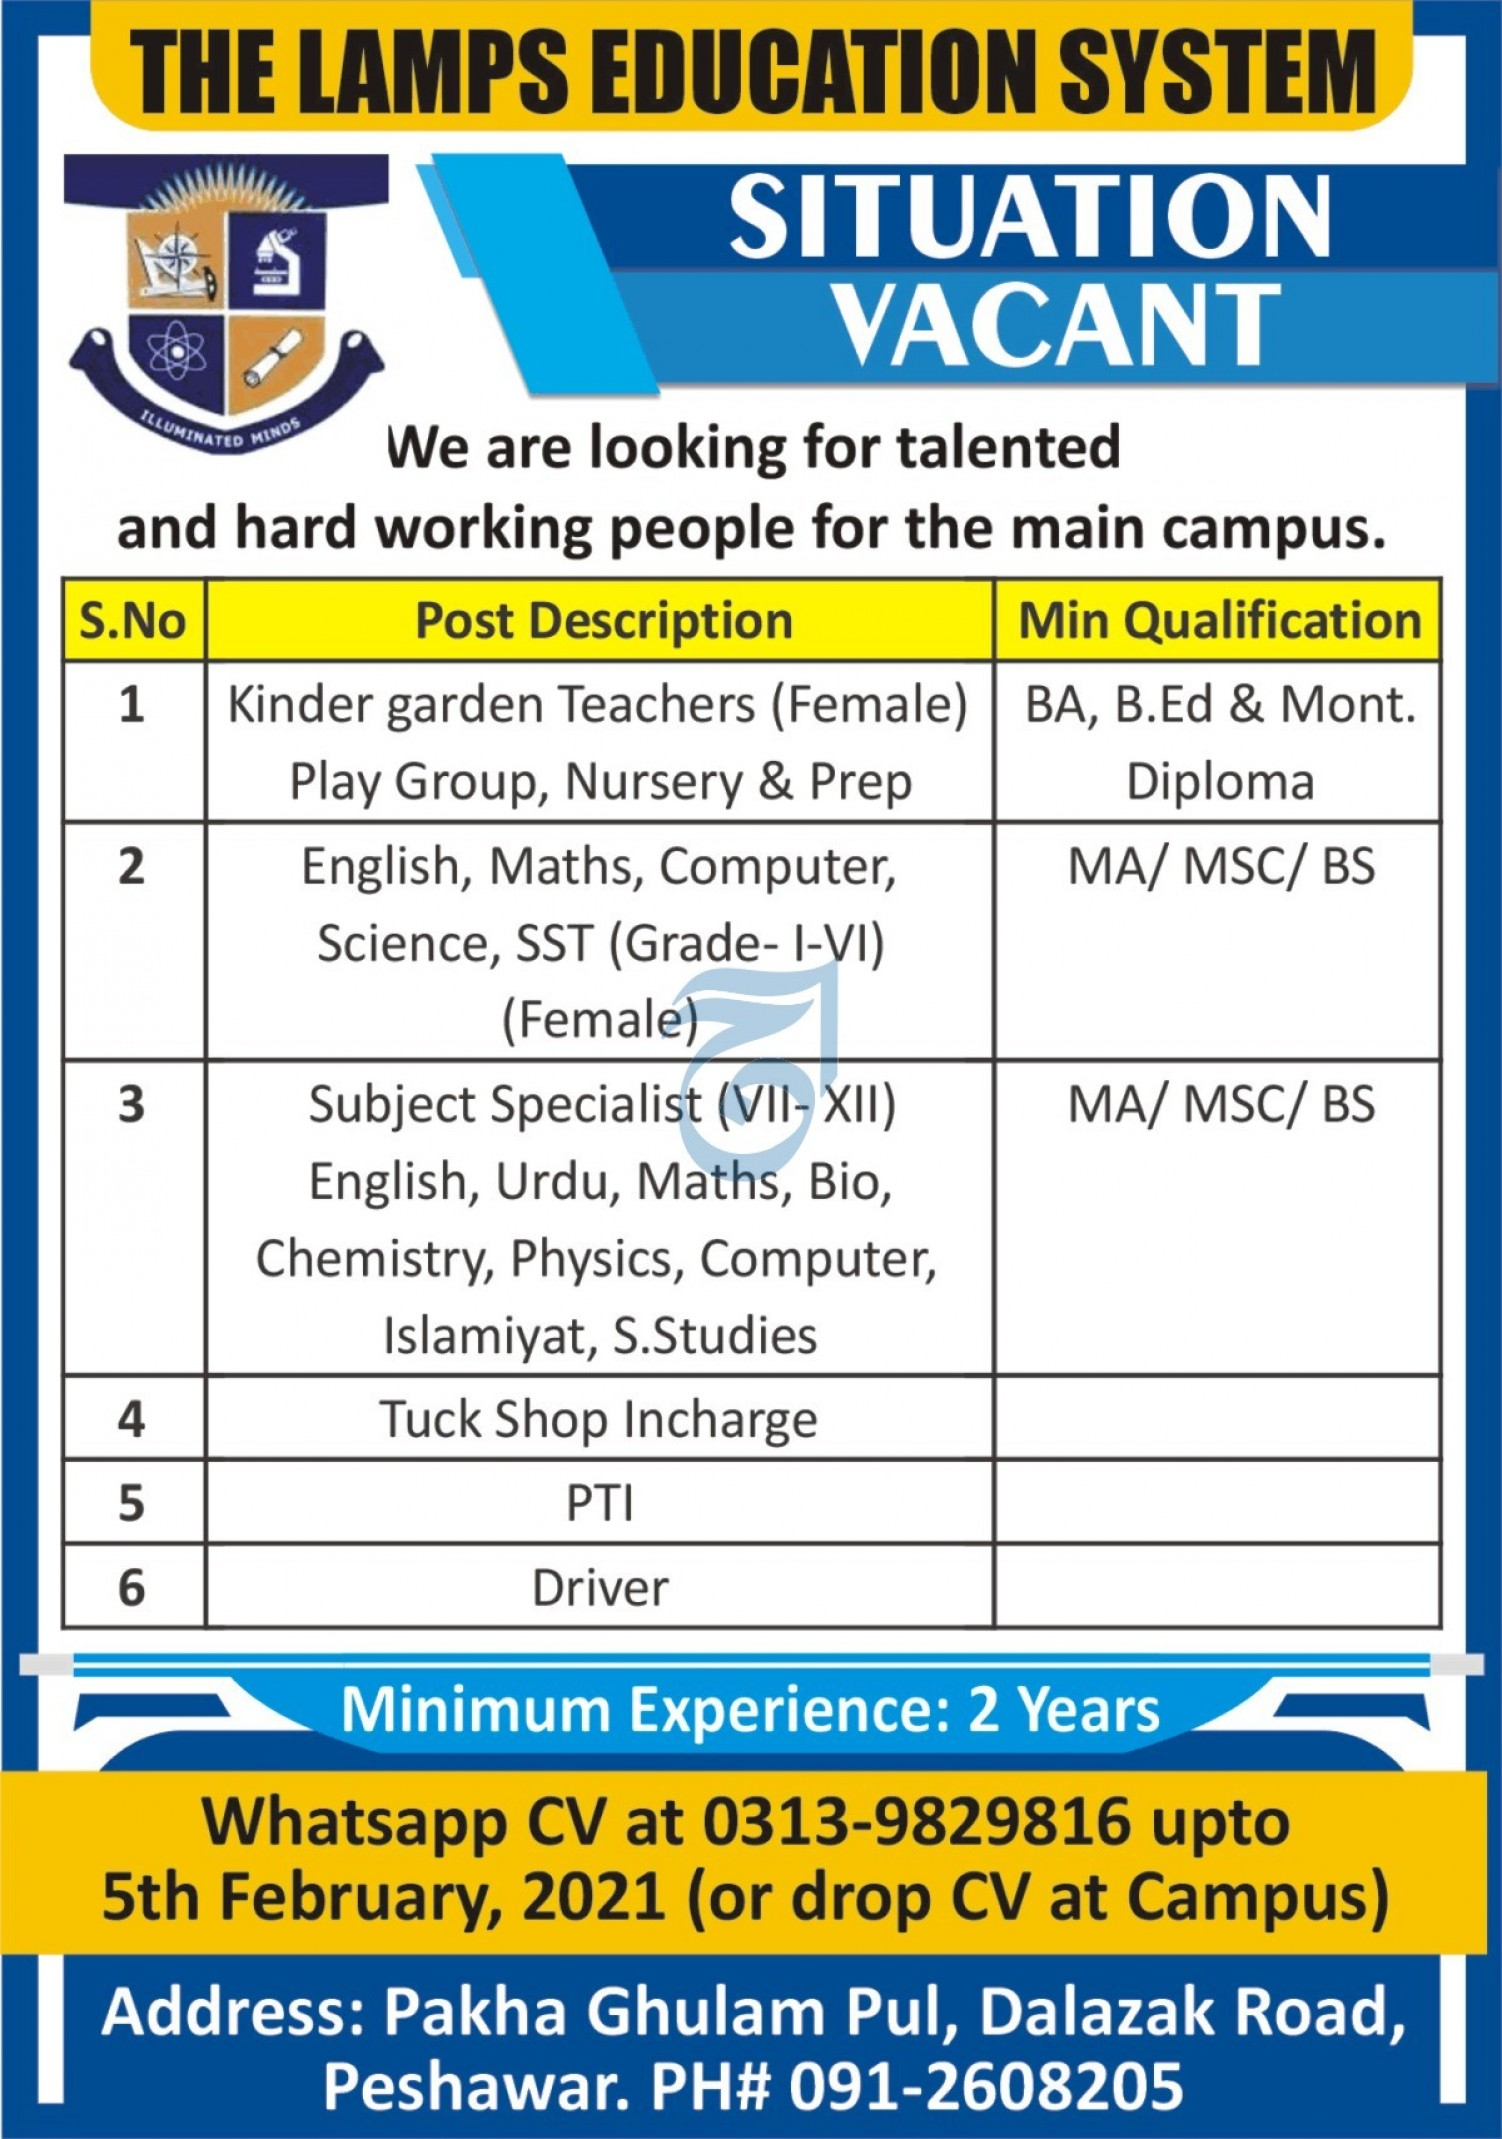 The Lamps Education System Jobs 2021 in Peshawar